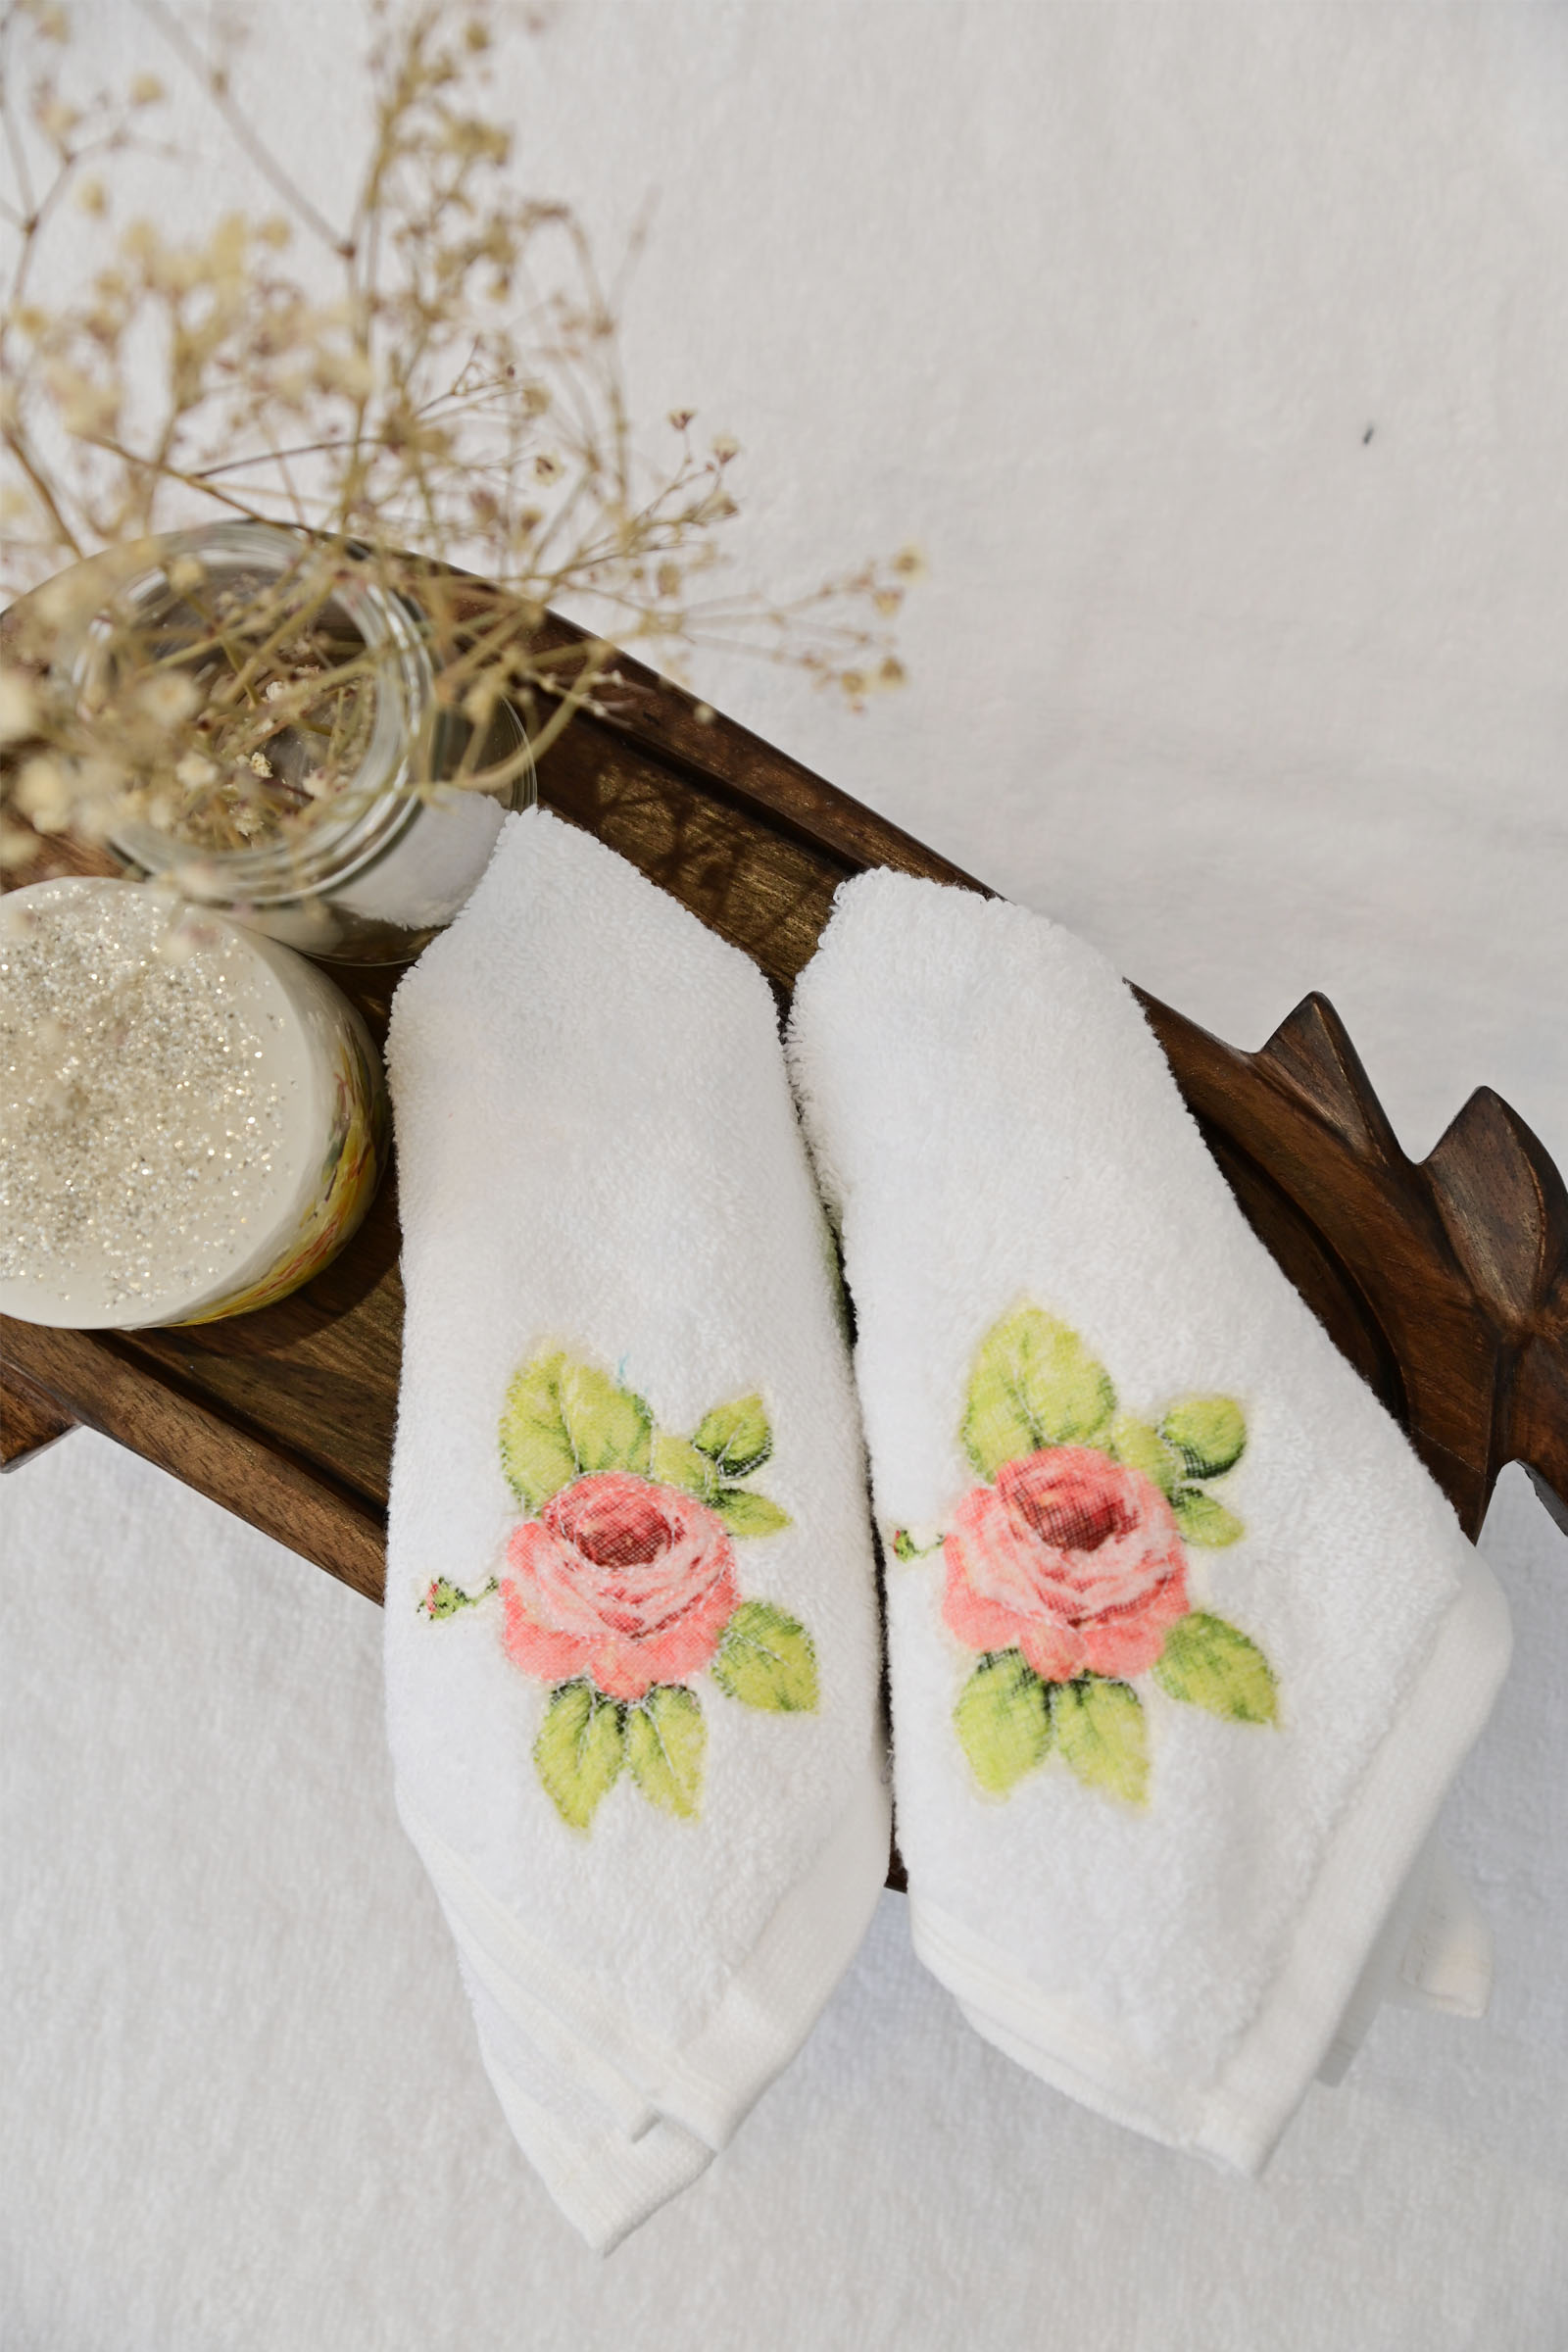 Life After Covid Face Towel (set of 2)